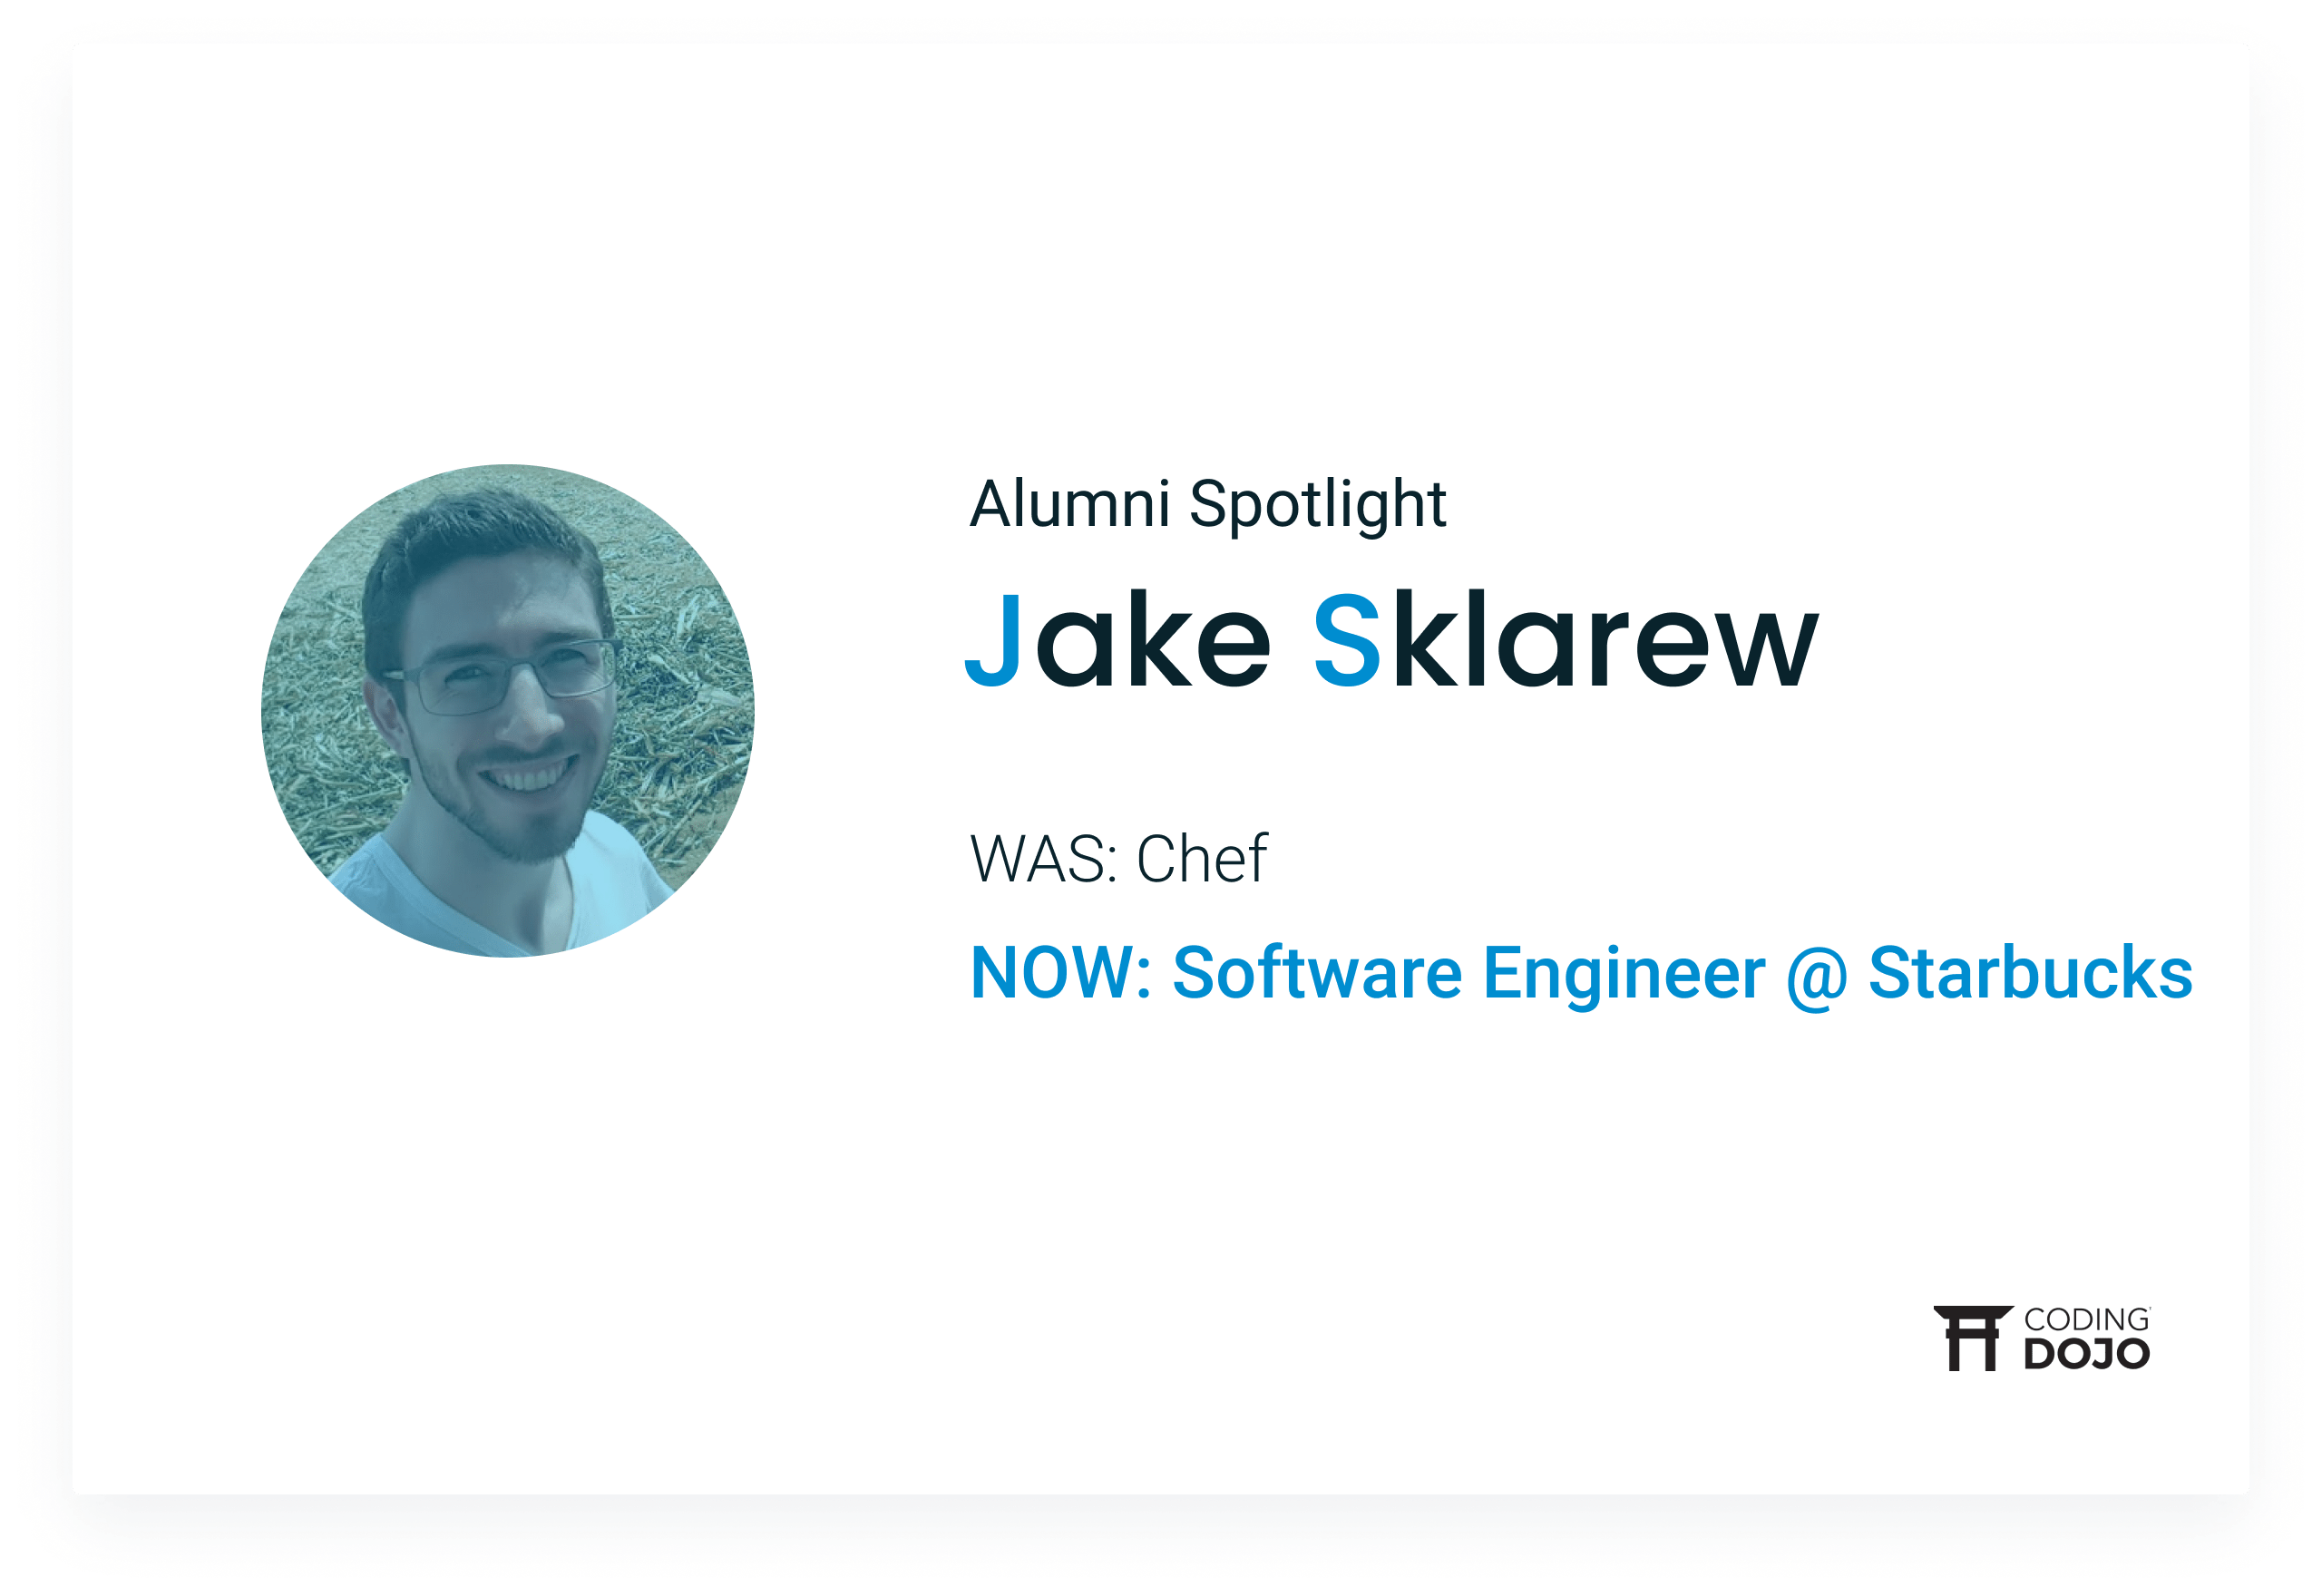 Coding Dojo Alumni Success | Jake Sklarew